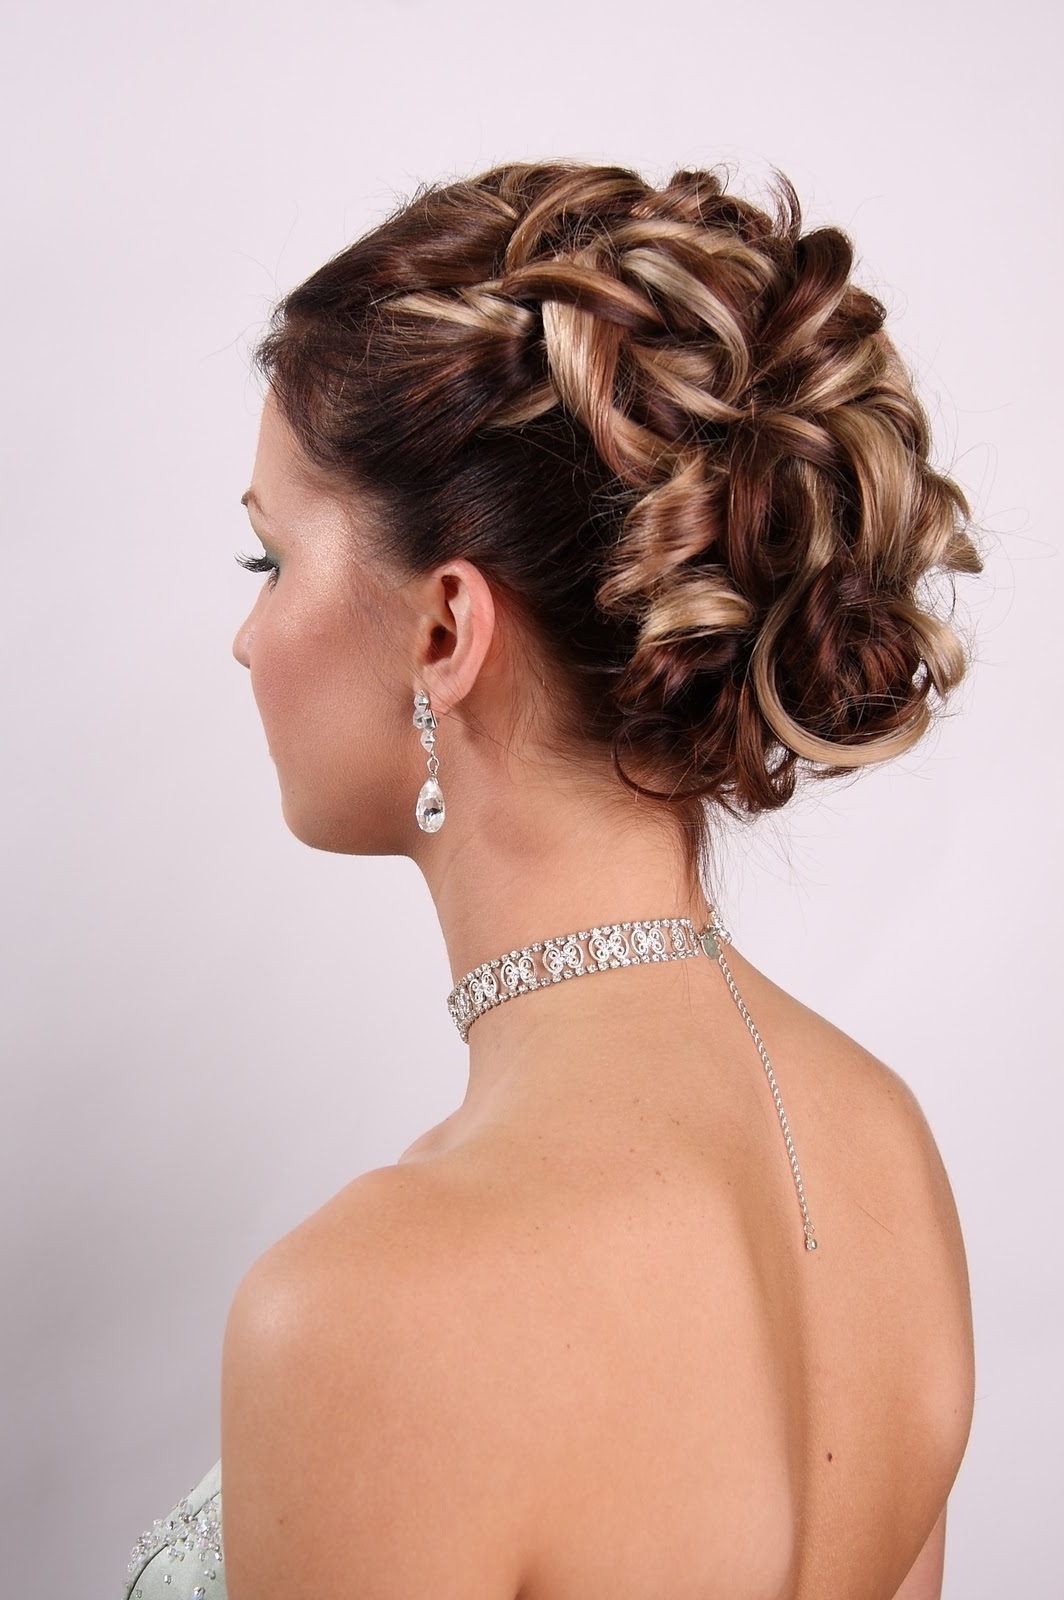 20 Of The Most Beautiful Updo Haircuts For Gorgeous Women – Haircuts In Well Known Classic Wedding Hairstyles For Medium Length Hair (View 11 of 15)